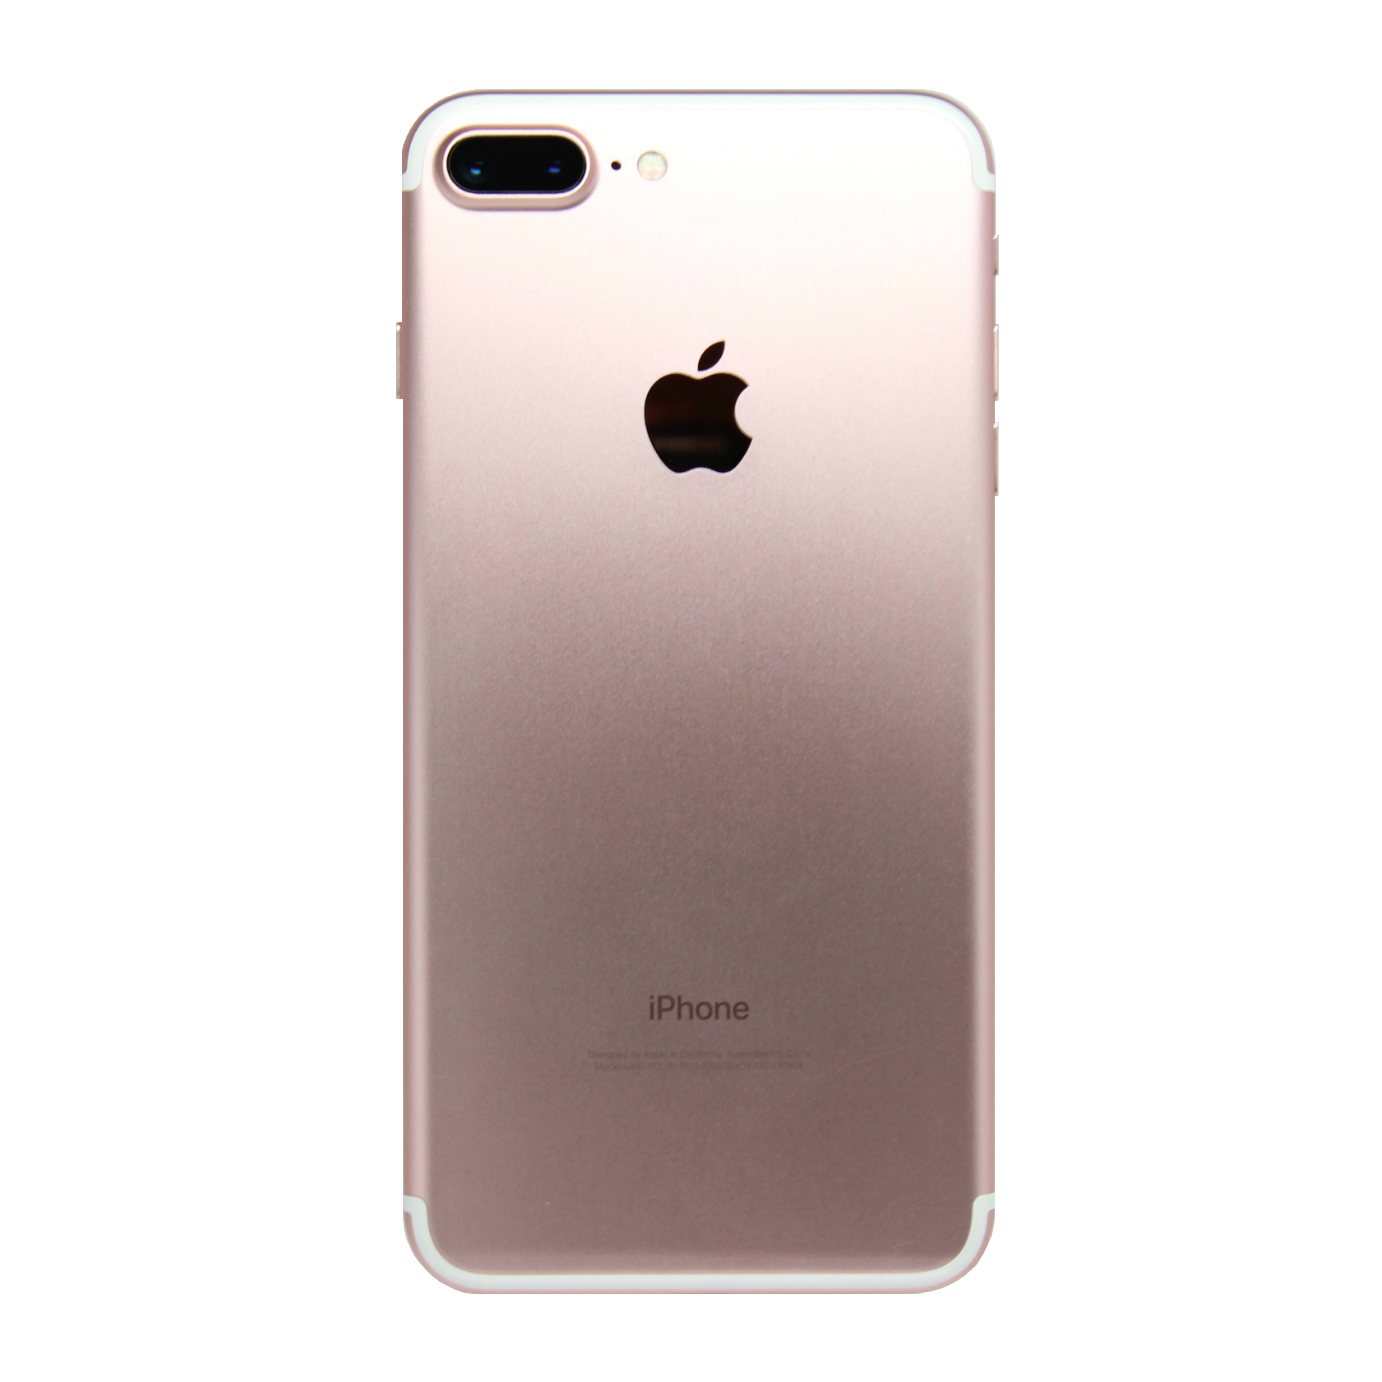 apple iphone 7 plus a1784 32gb smartphone gsm unlocked. Black Bedroom Furniture Sets. Home Design Ideas